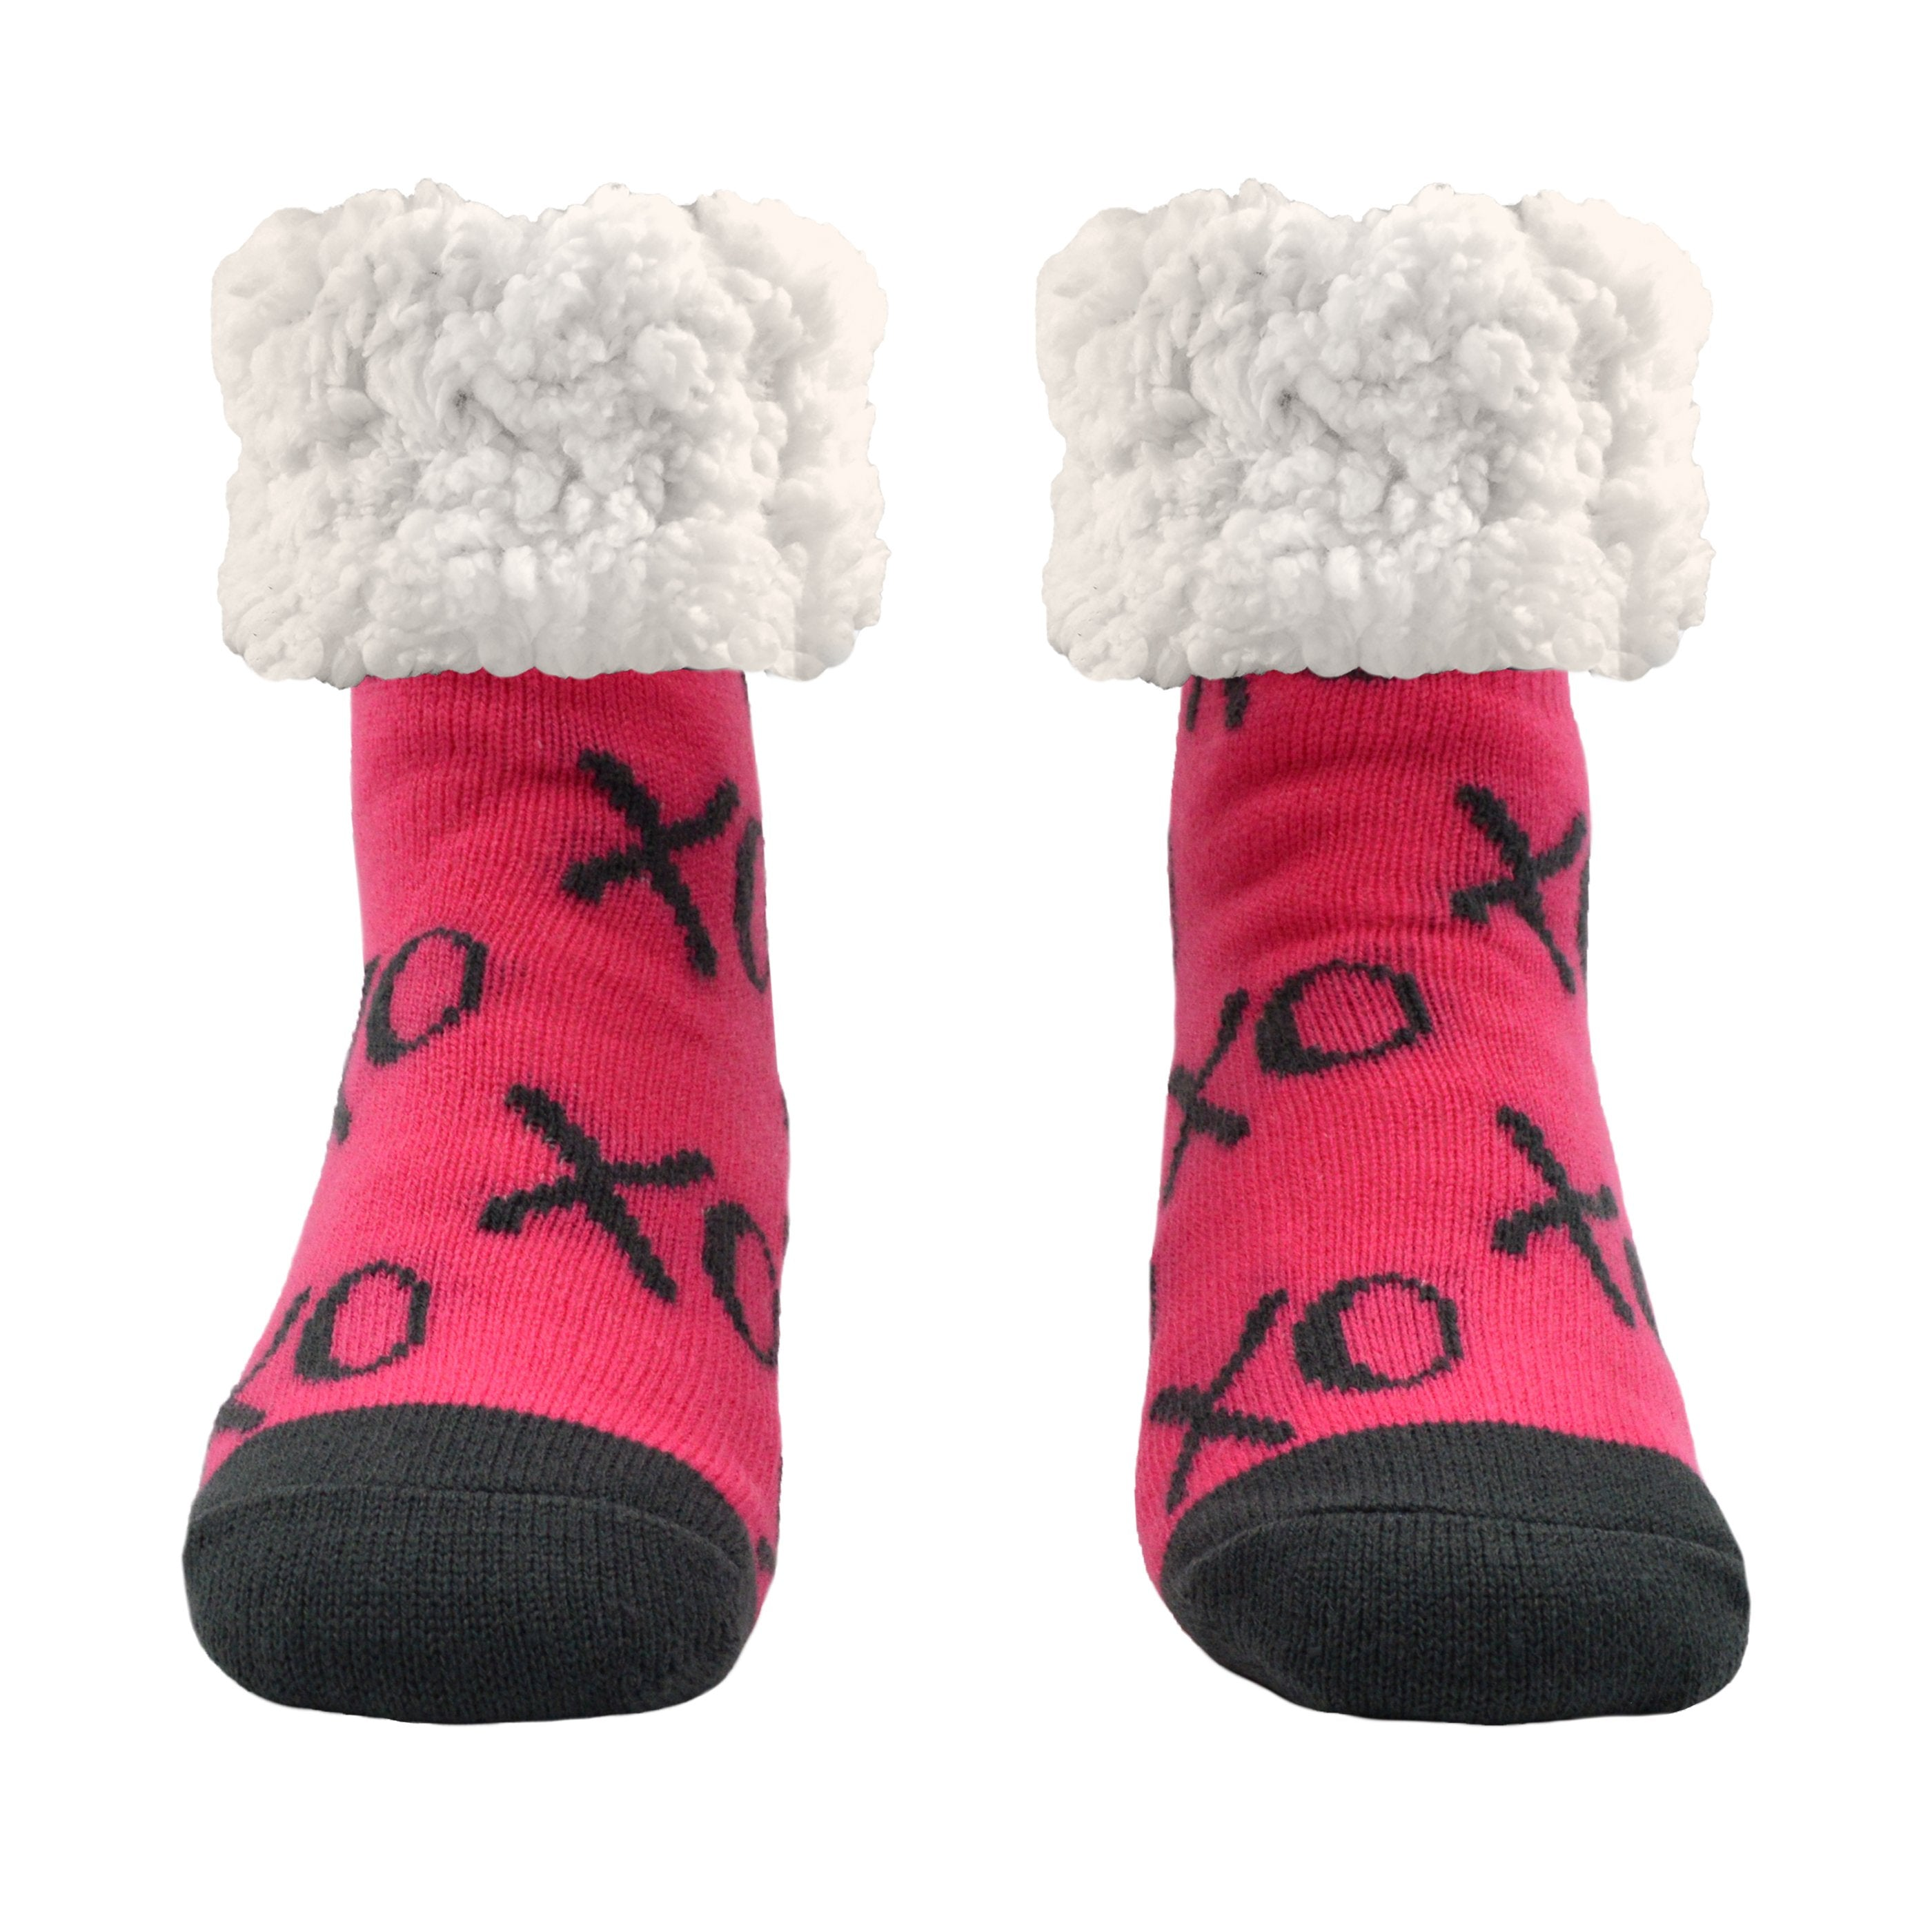 Pudus Cozy Winter Slipper Socks for Women and Men with Non-Slip Grippers and Faux Fur Sherpa Fleece - Adult Regular Fuzzy Socks XOXO Pink - Classic Slipper Sock